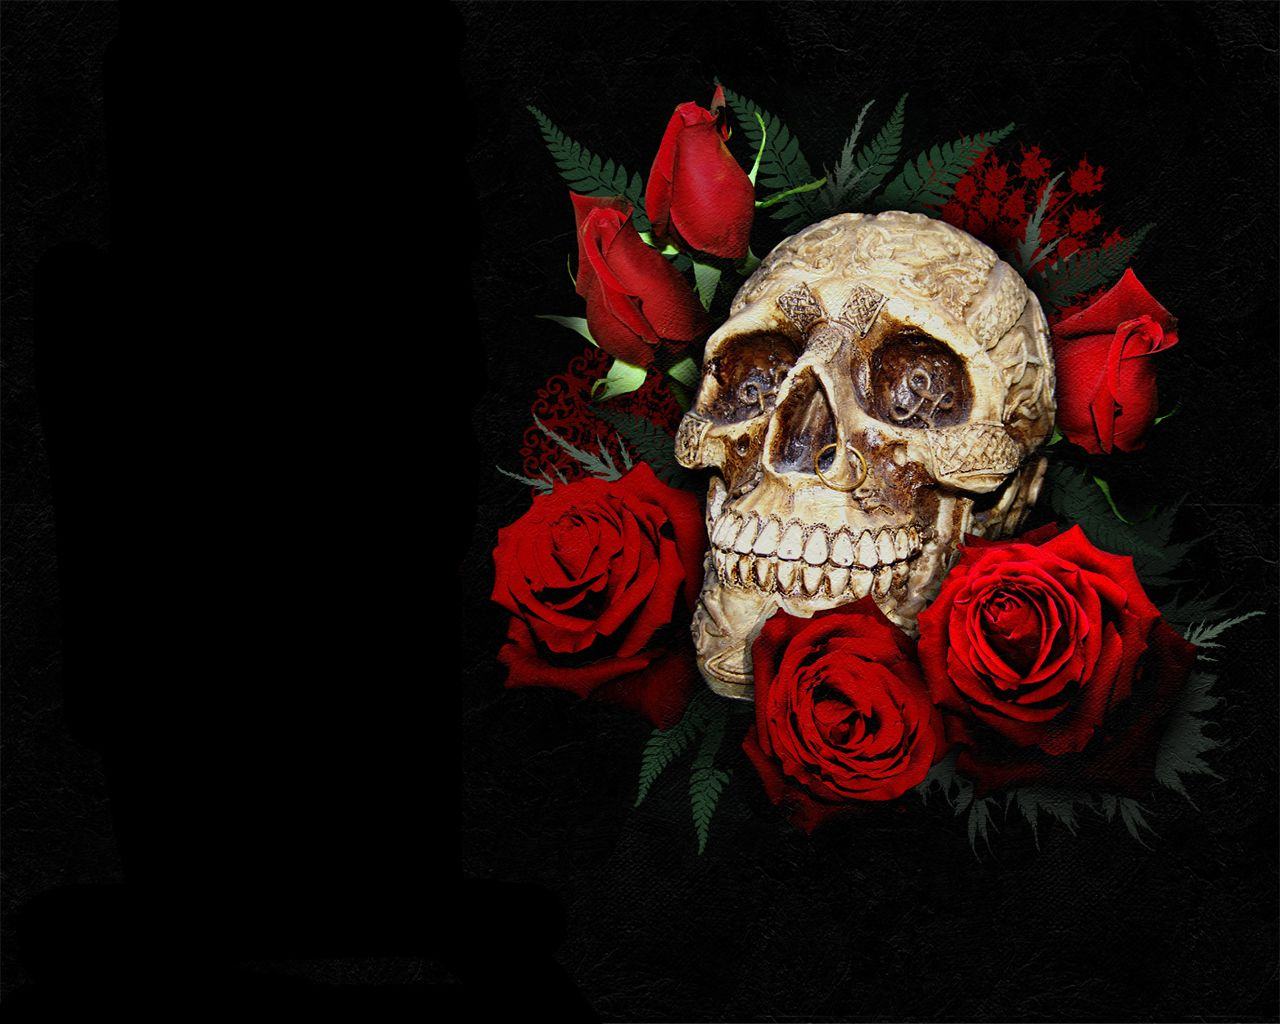 Emo Skull And Rose Glitter Gif Artistic Skulls Wallpaper Red Roses